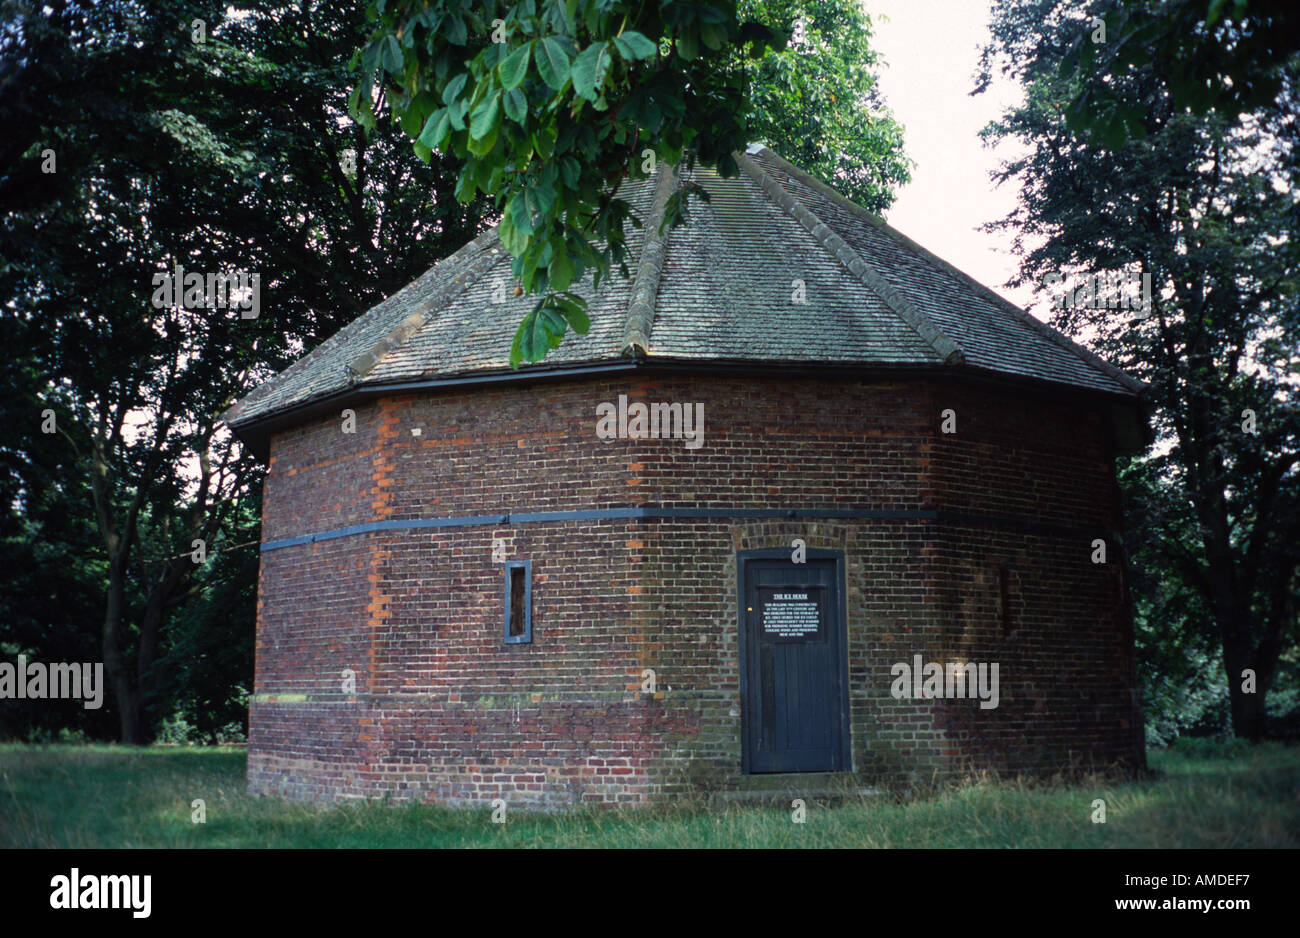 The 12 Sided Ice House In Home Park Hampton Court Middlesex